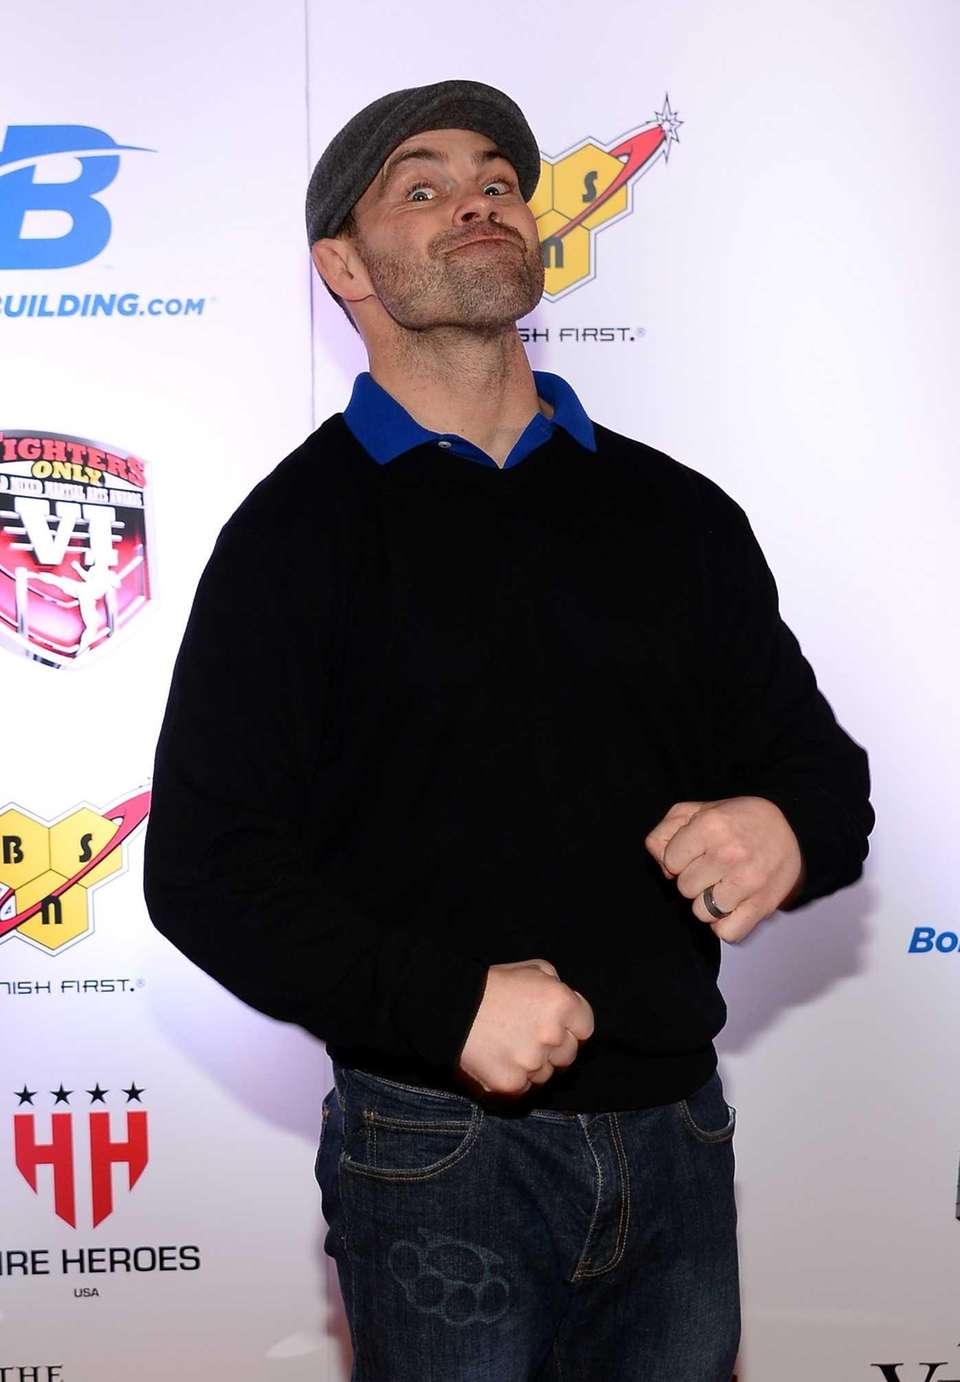 Successful title defenses: 2. Jens Pulver became the